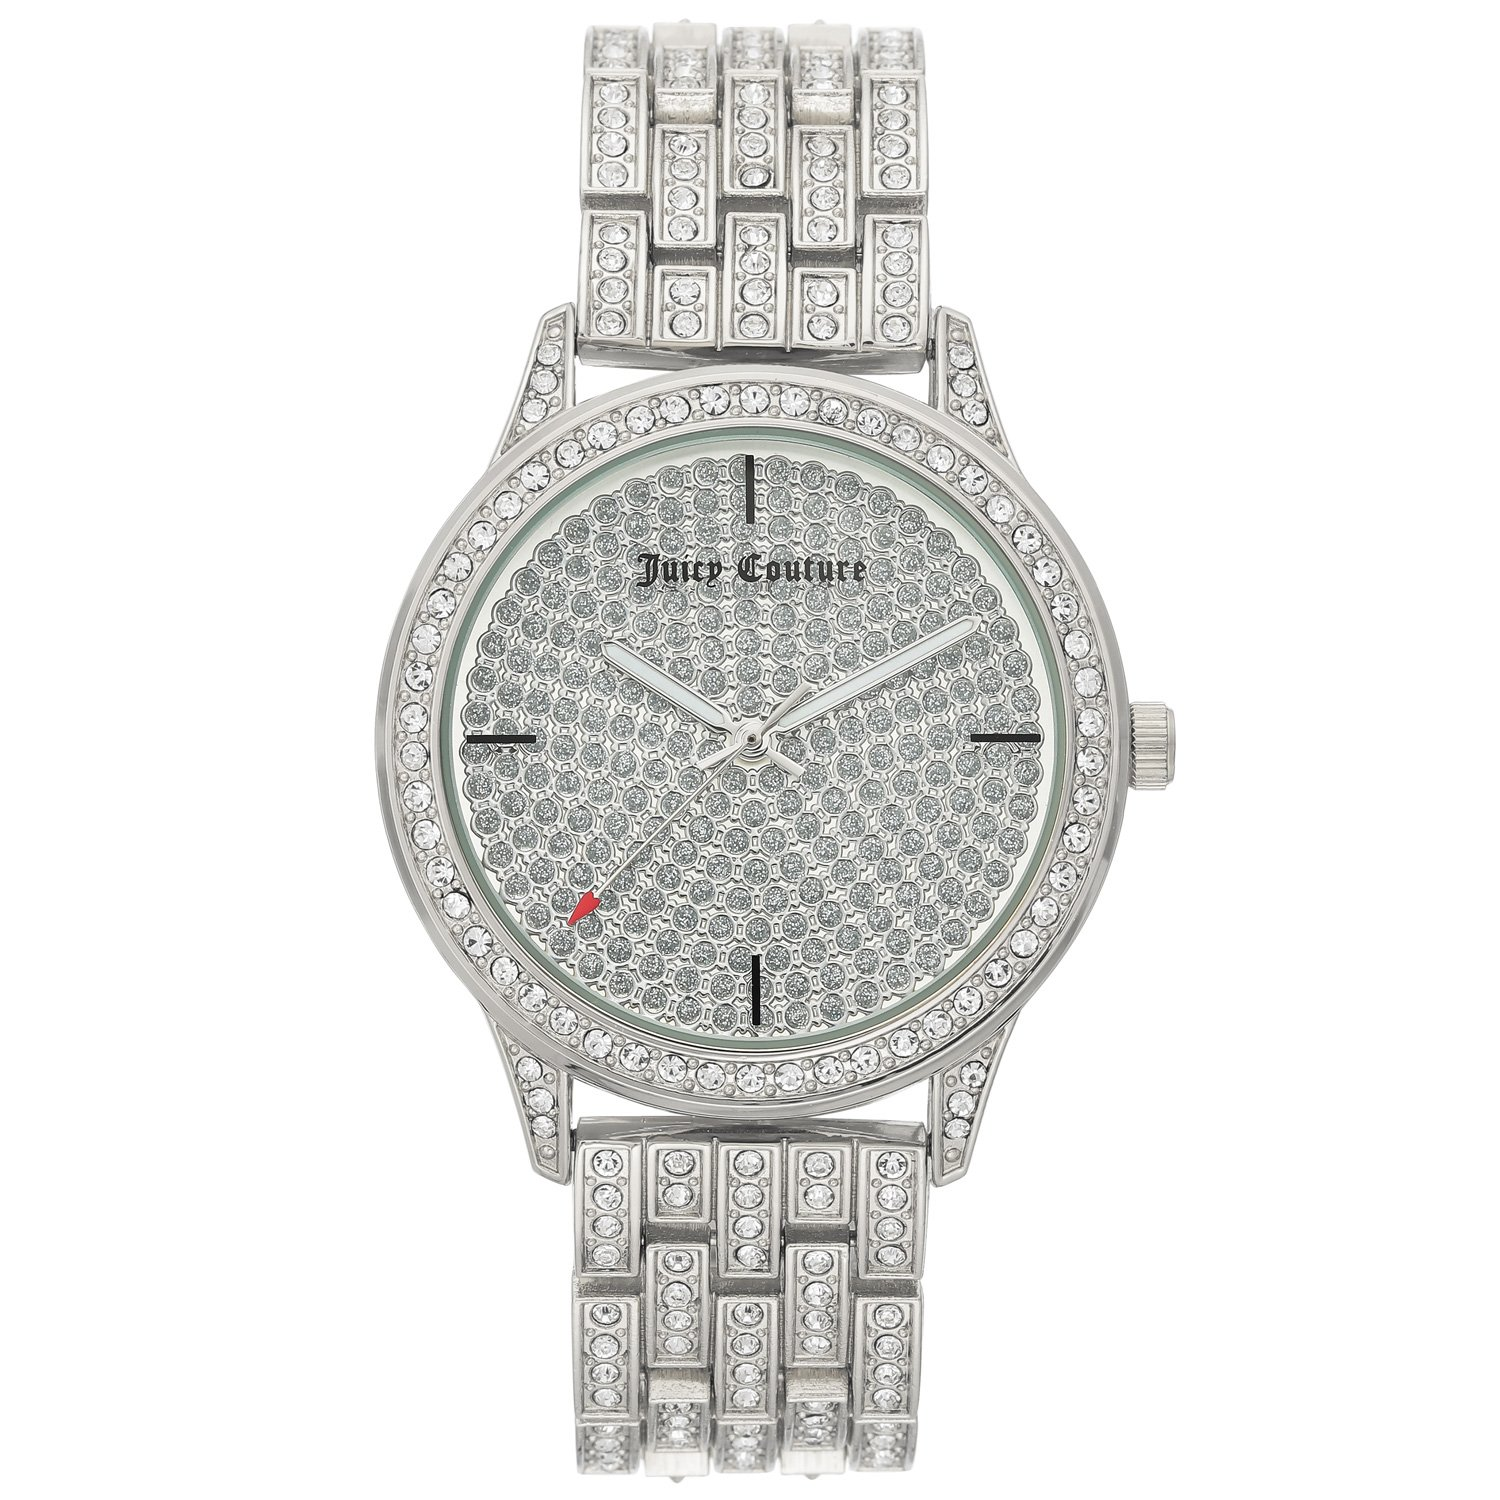 Juicy Couture Women's Watch Silver JC/1138PVSV